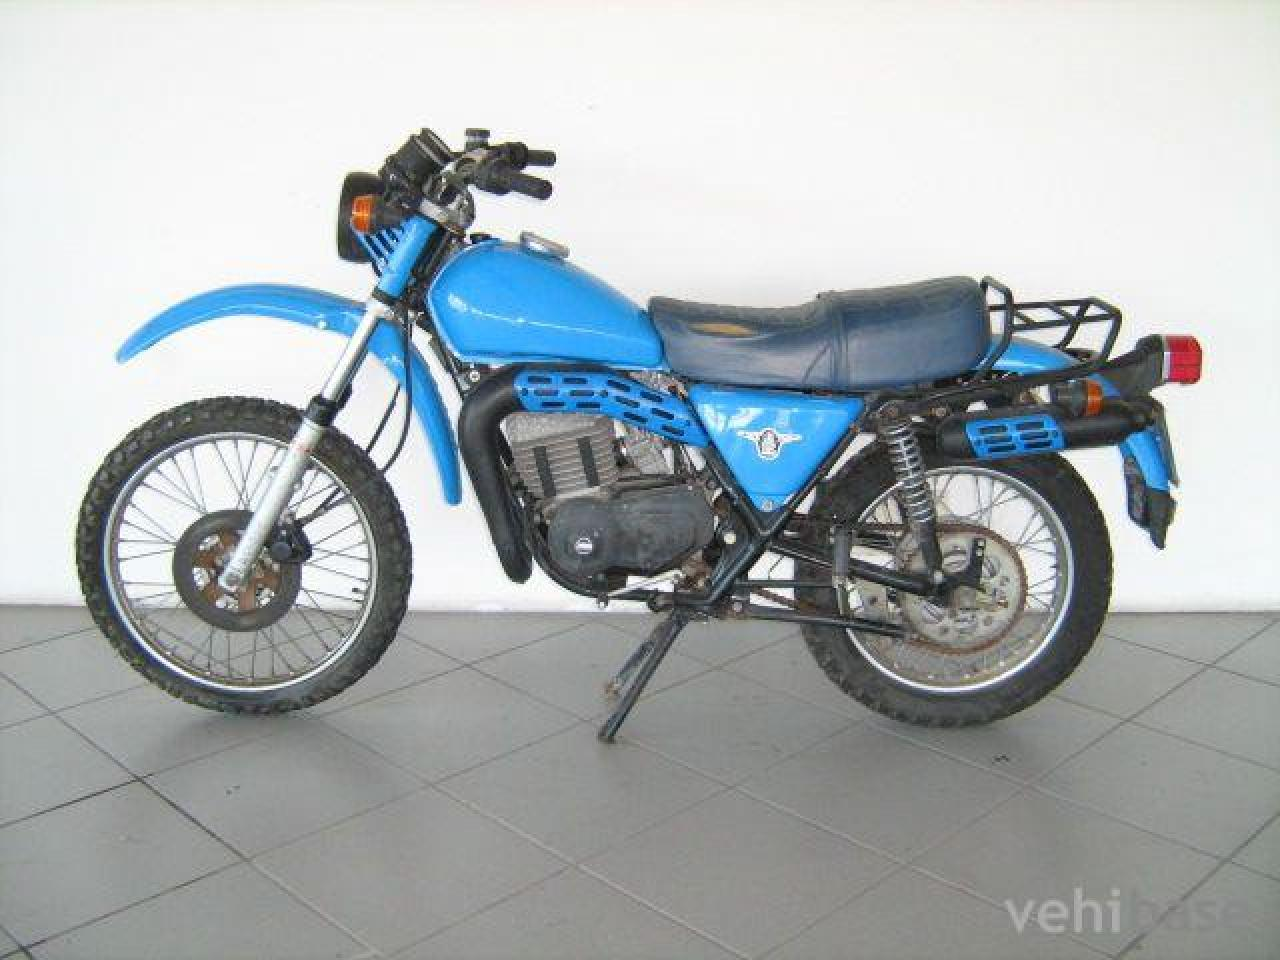 Cagiva SX 350 1981 images #94218